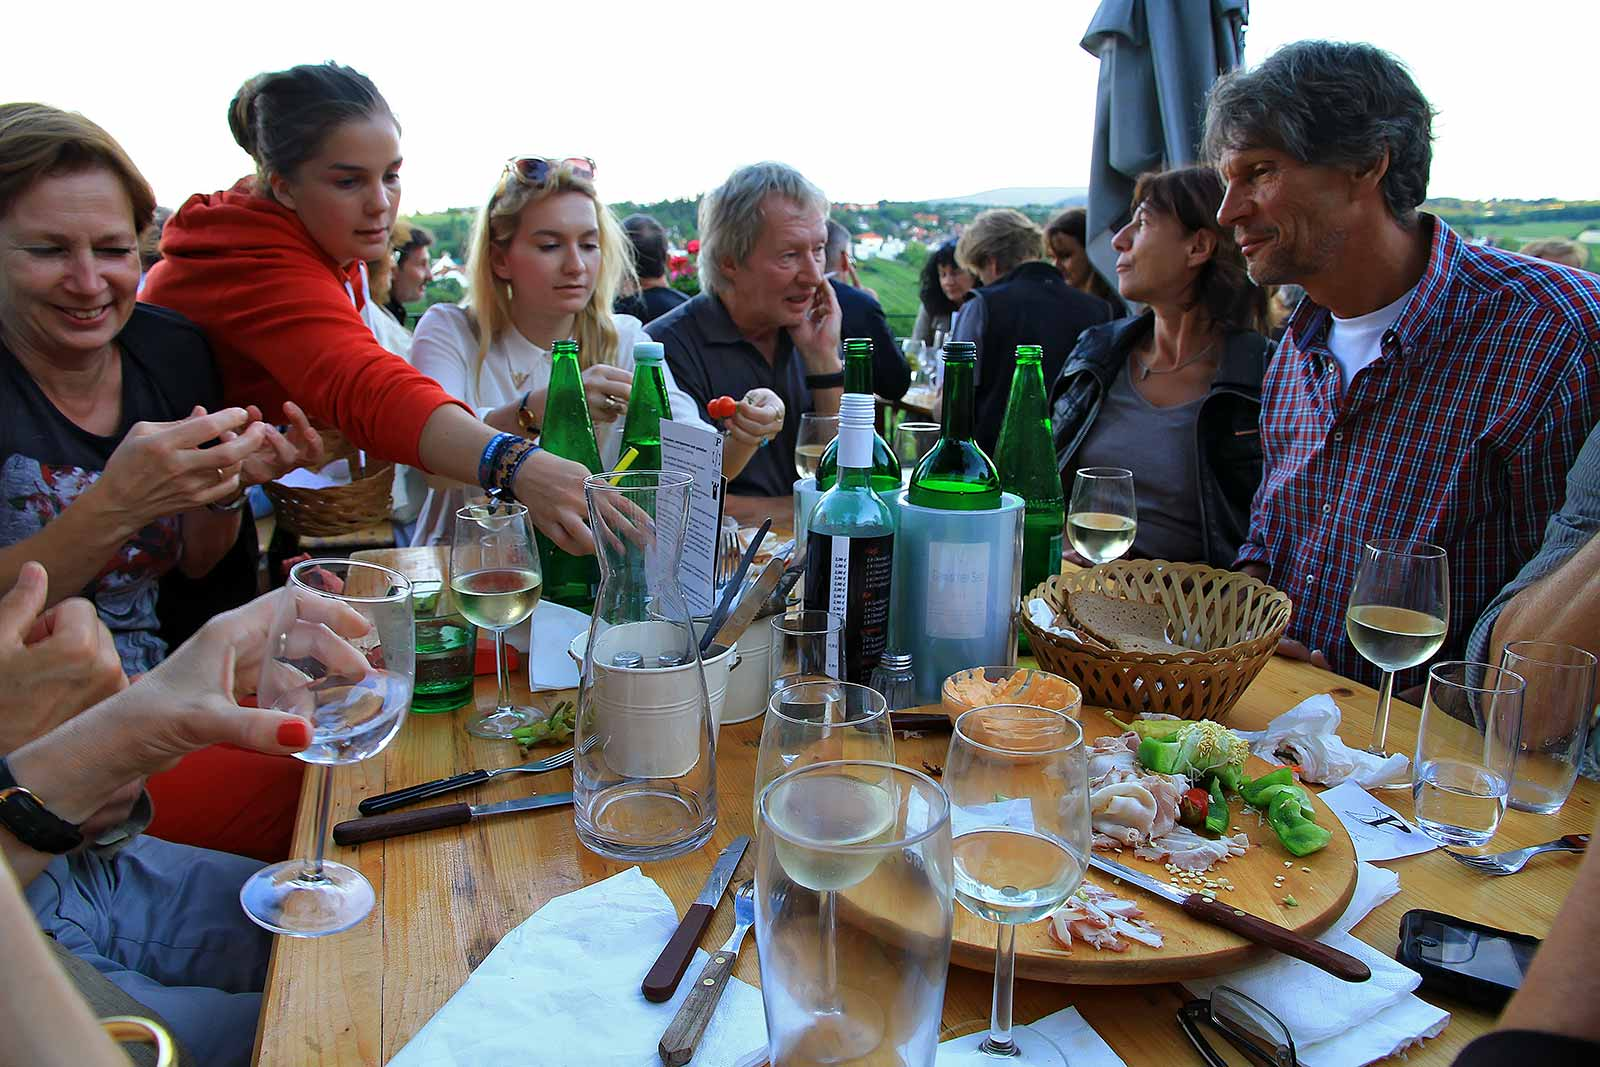 A typical Heurigen get together. The name was given to Eastern-Austrian wine taverns in which wine-growers serve the most recent year's wines.